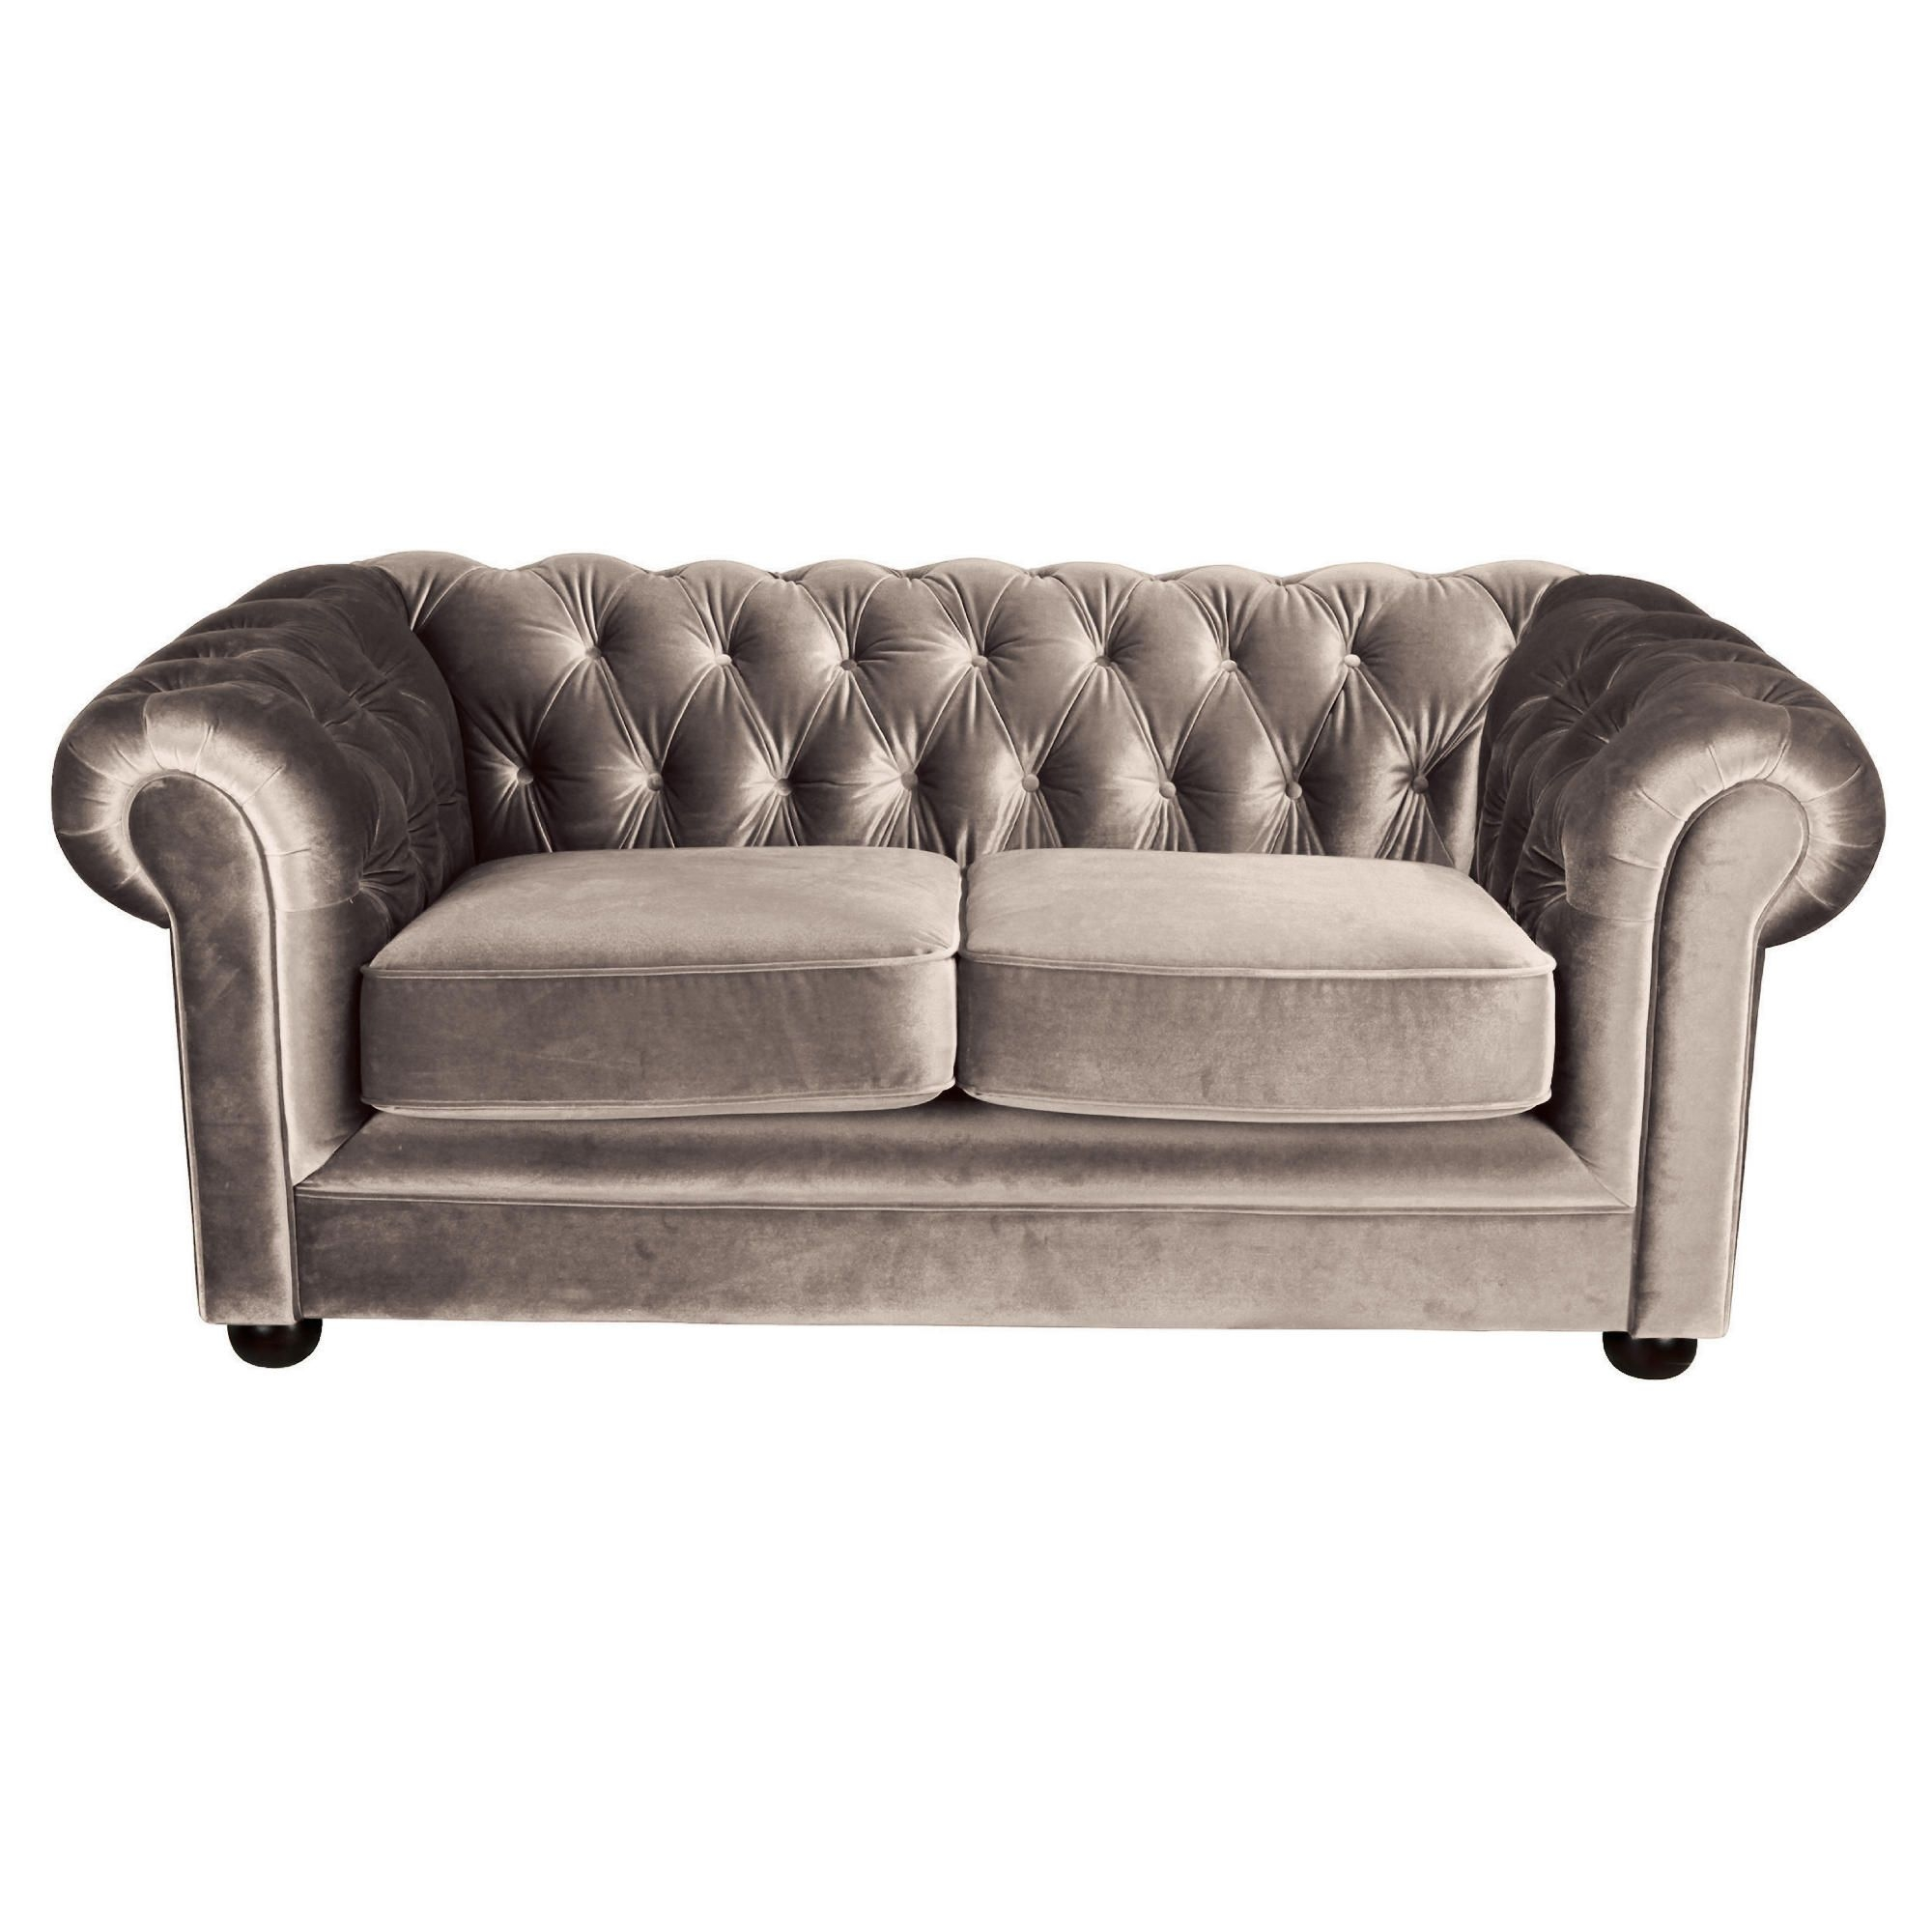 Storage Ordinary Small Leather Chesterfield Sofa Part 6 Ordinary With Regard To Small Chesterfield Sofas (Image 14 of 15)